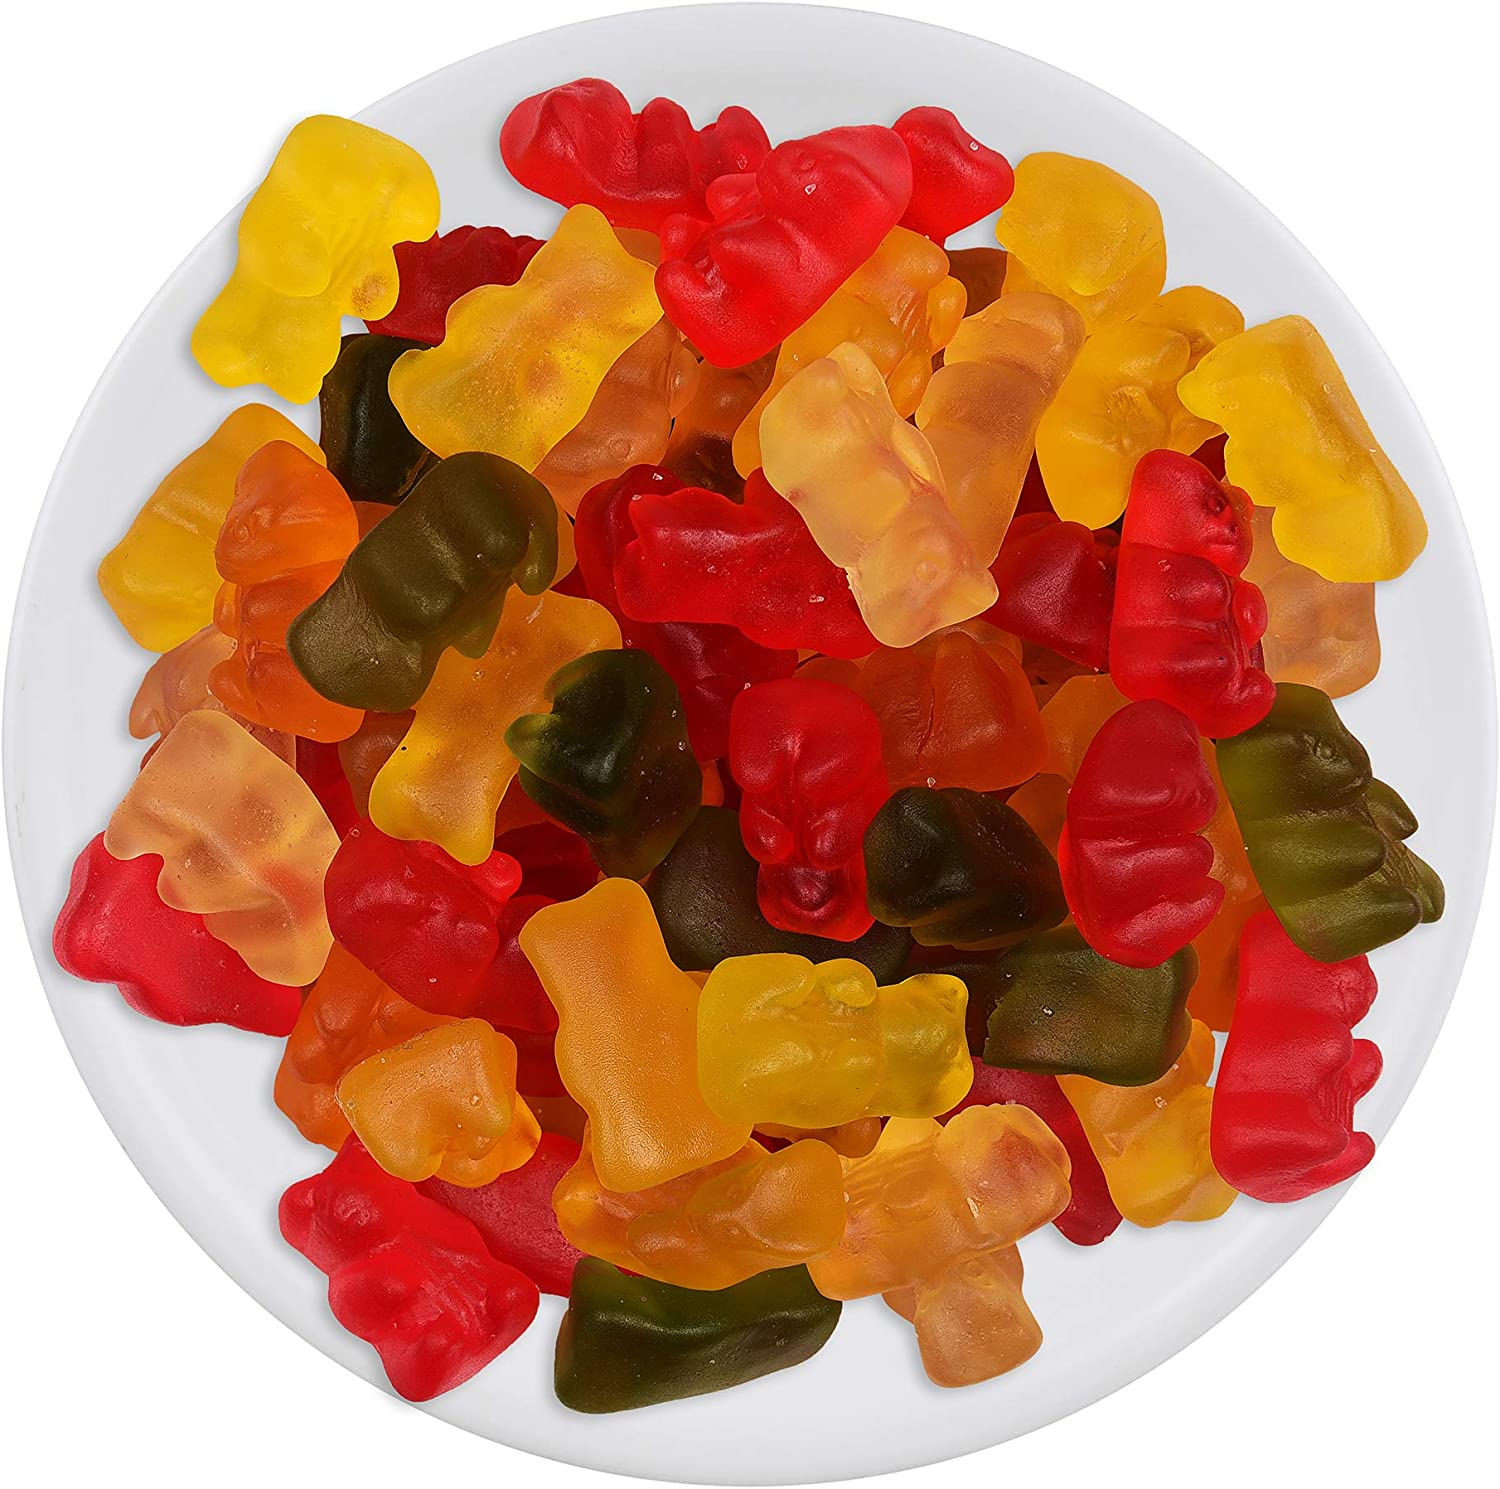 House of candy Gummy Bear Animal Shaped Candy W/Gummy Coating, Jelly Candy,  100 g: Amazon.in: Grocery & Gourmet Foods